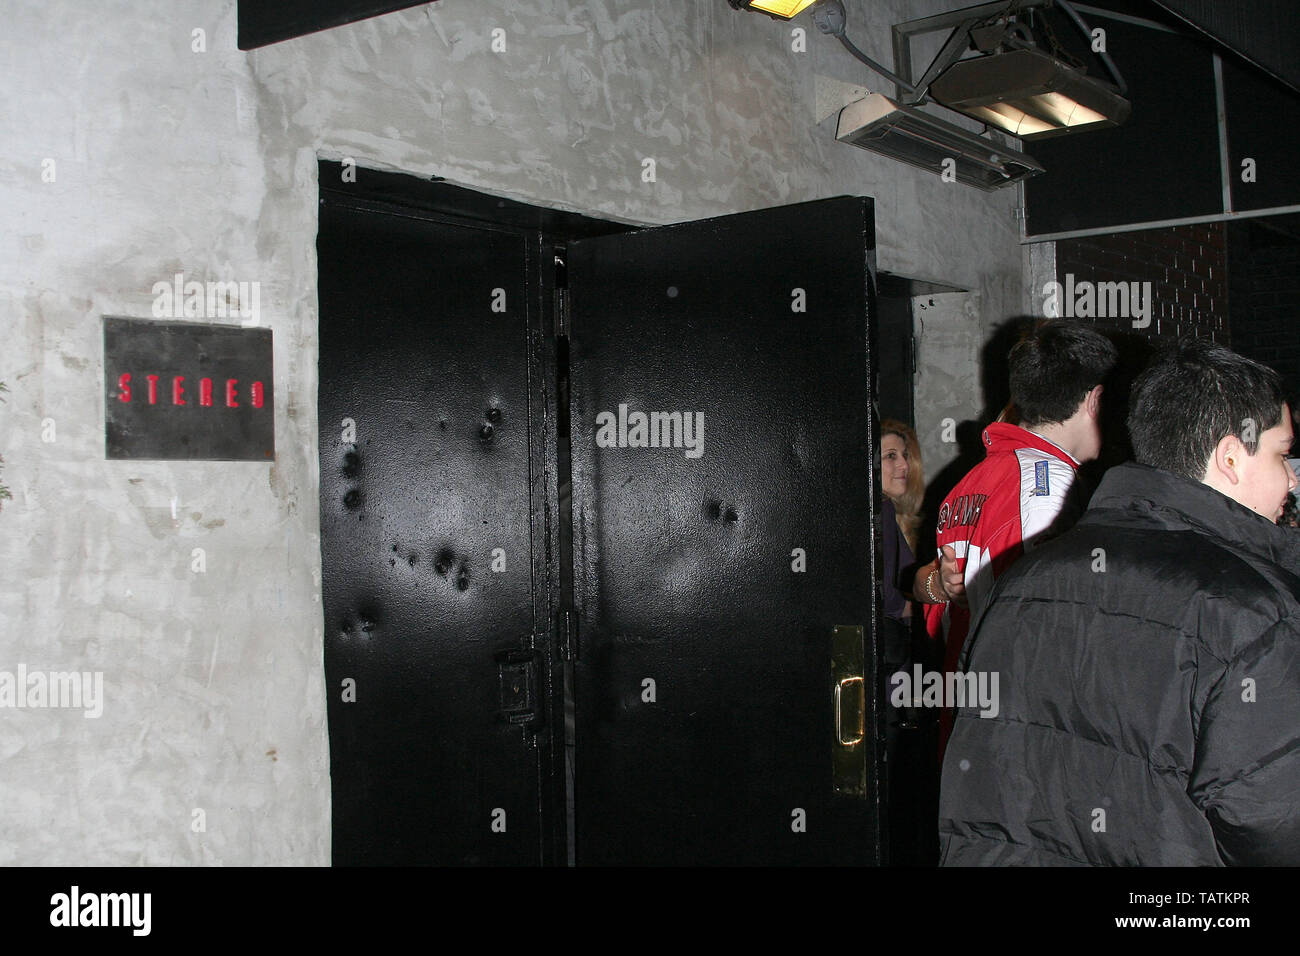 New York, USA. 10 January, 2008. Atmosphere at the 'How to Eat Like a Hot Chick' Book Release Party at Club Stereo. Credit: Steve Mack/Alamy - Stock Image